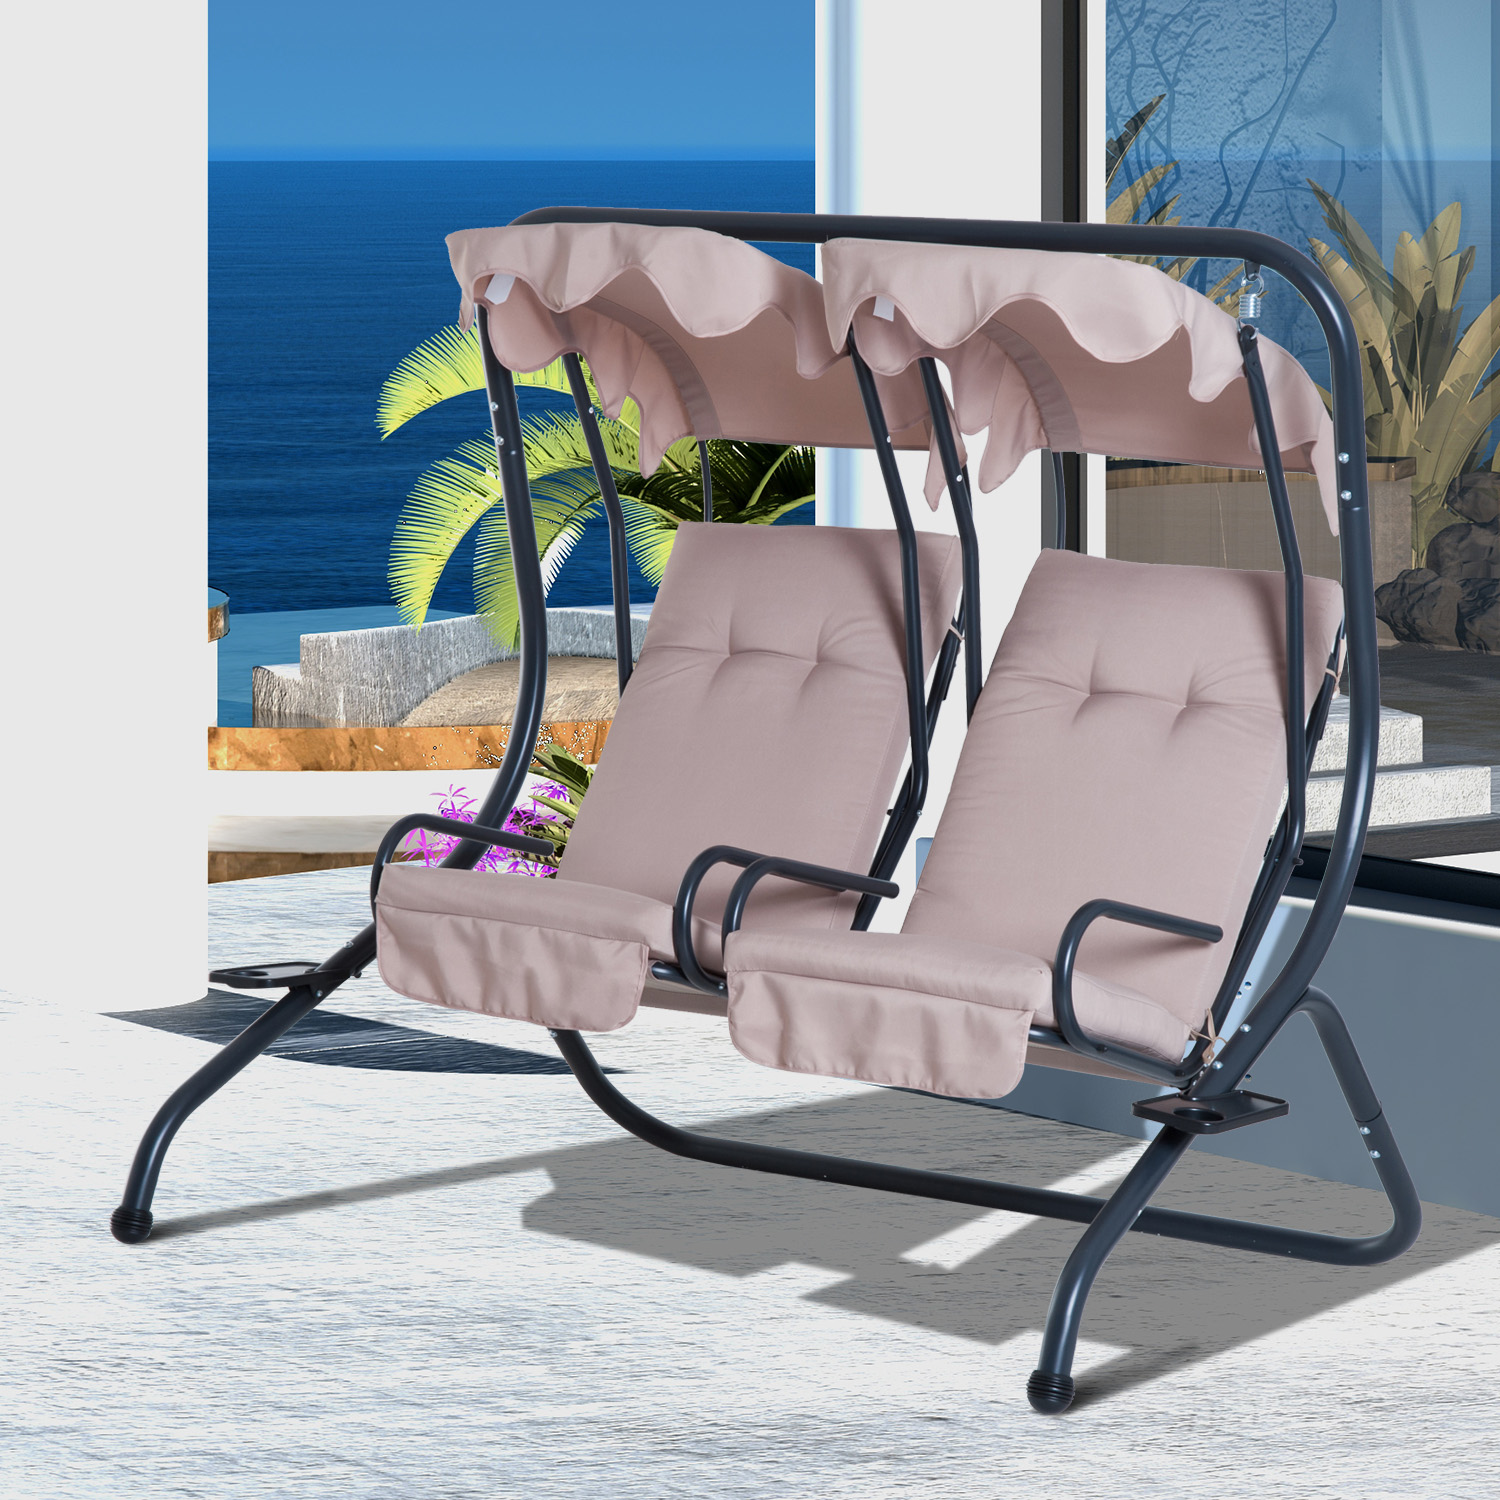 Outdoor 2 Person Patio Swing Chair Steel Hanging Seat With Canopy